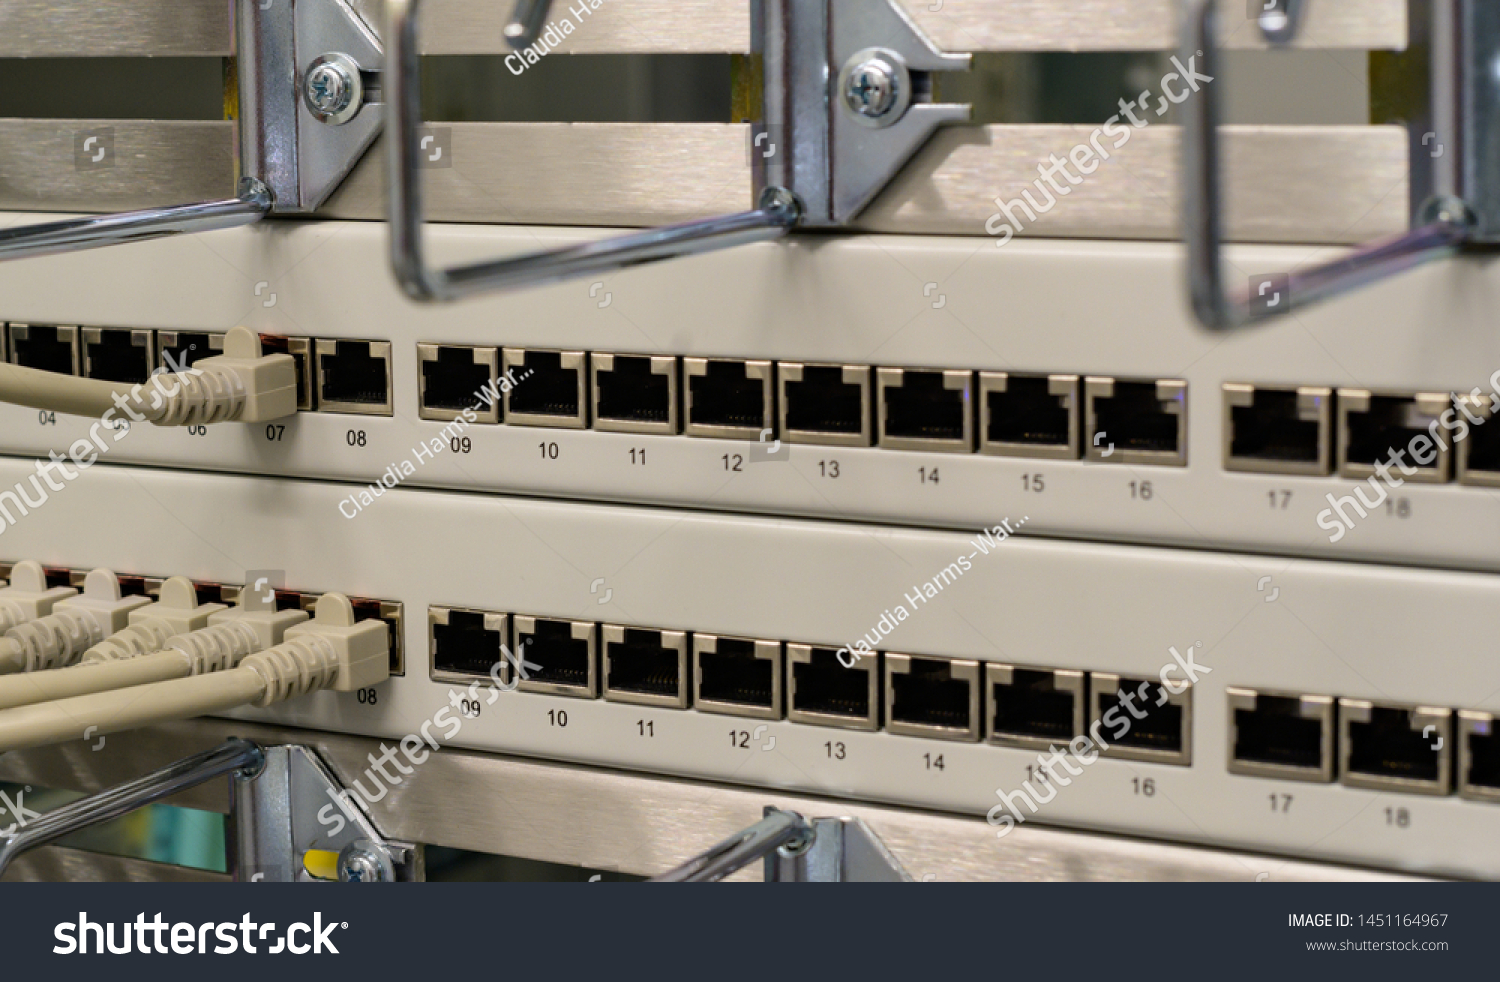 Network switch and network cable in a data center #1451164967